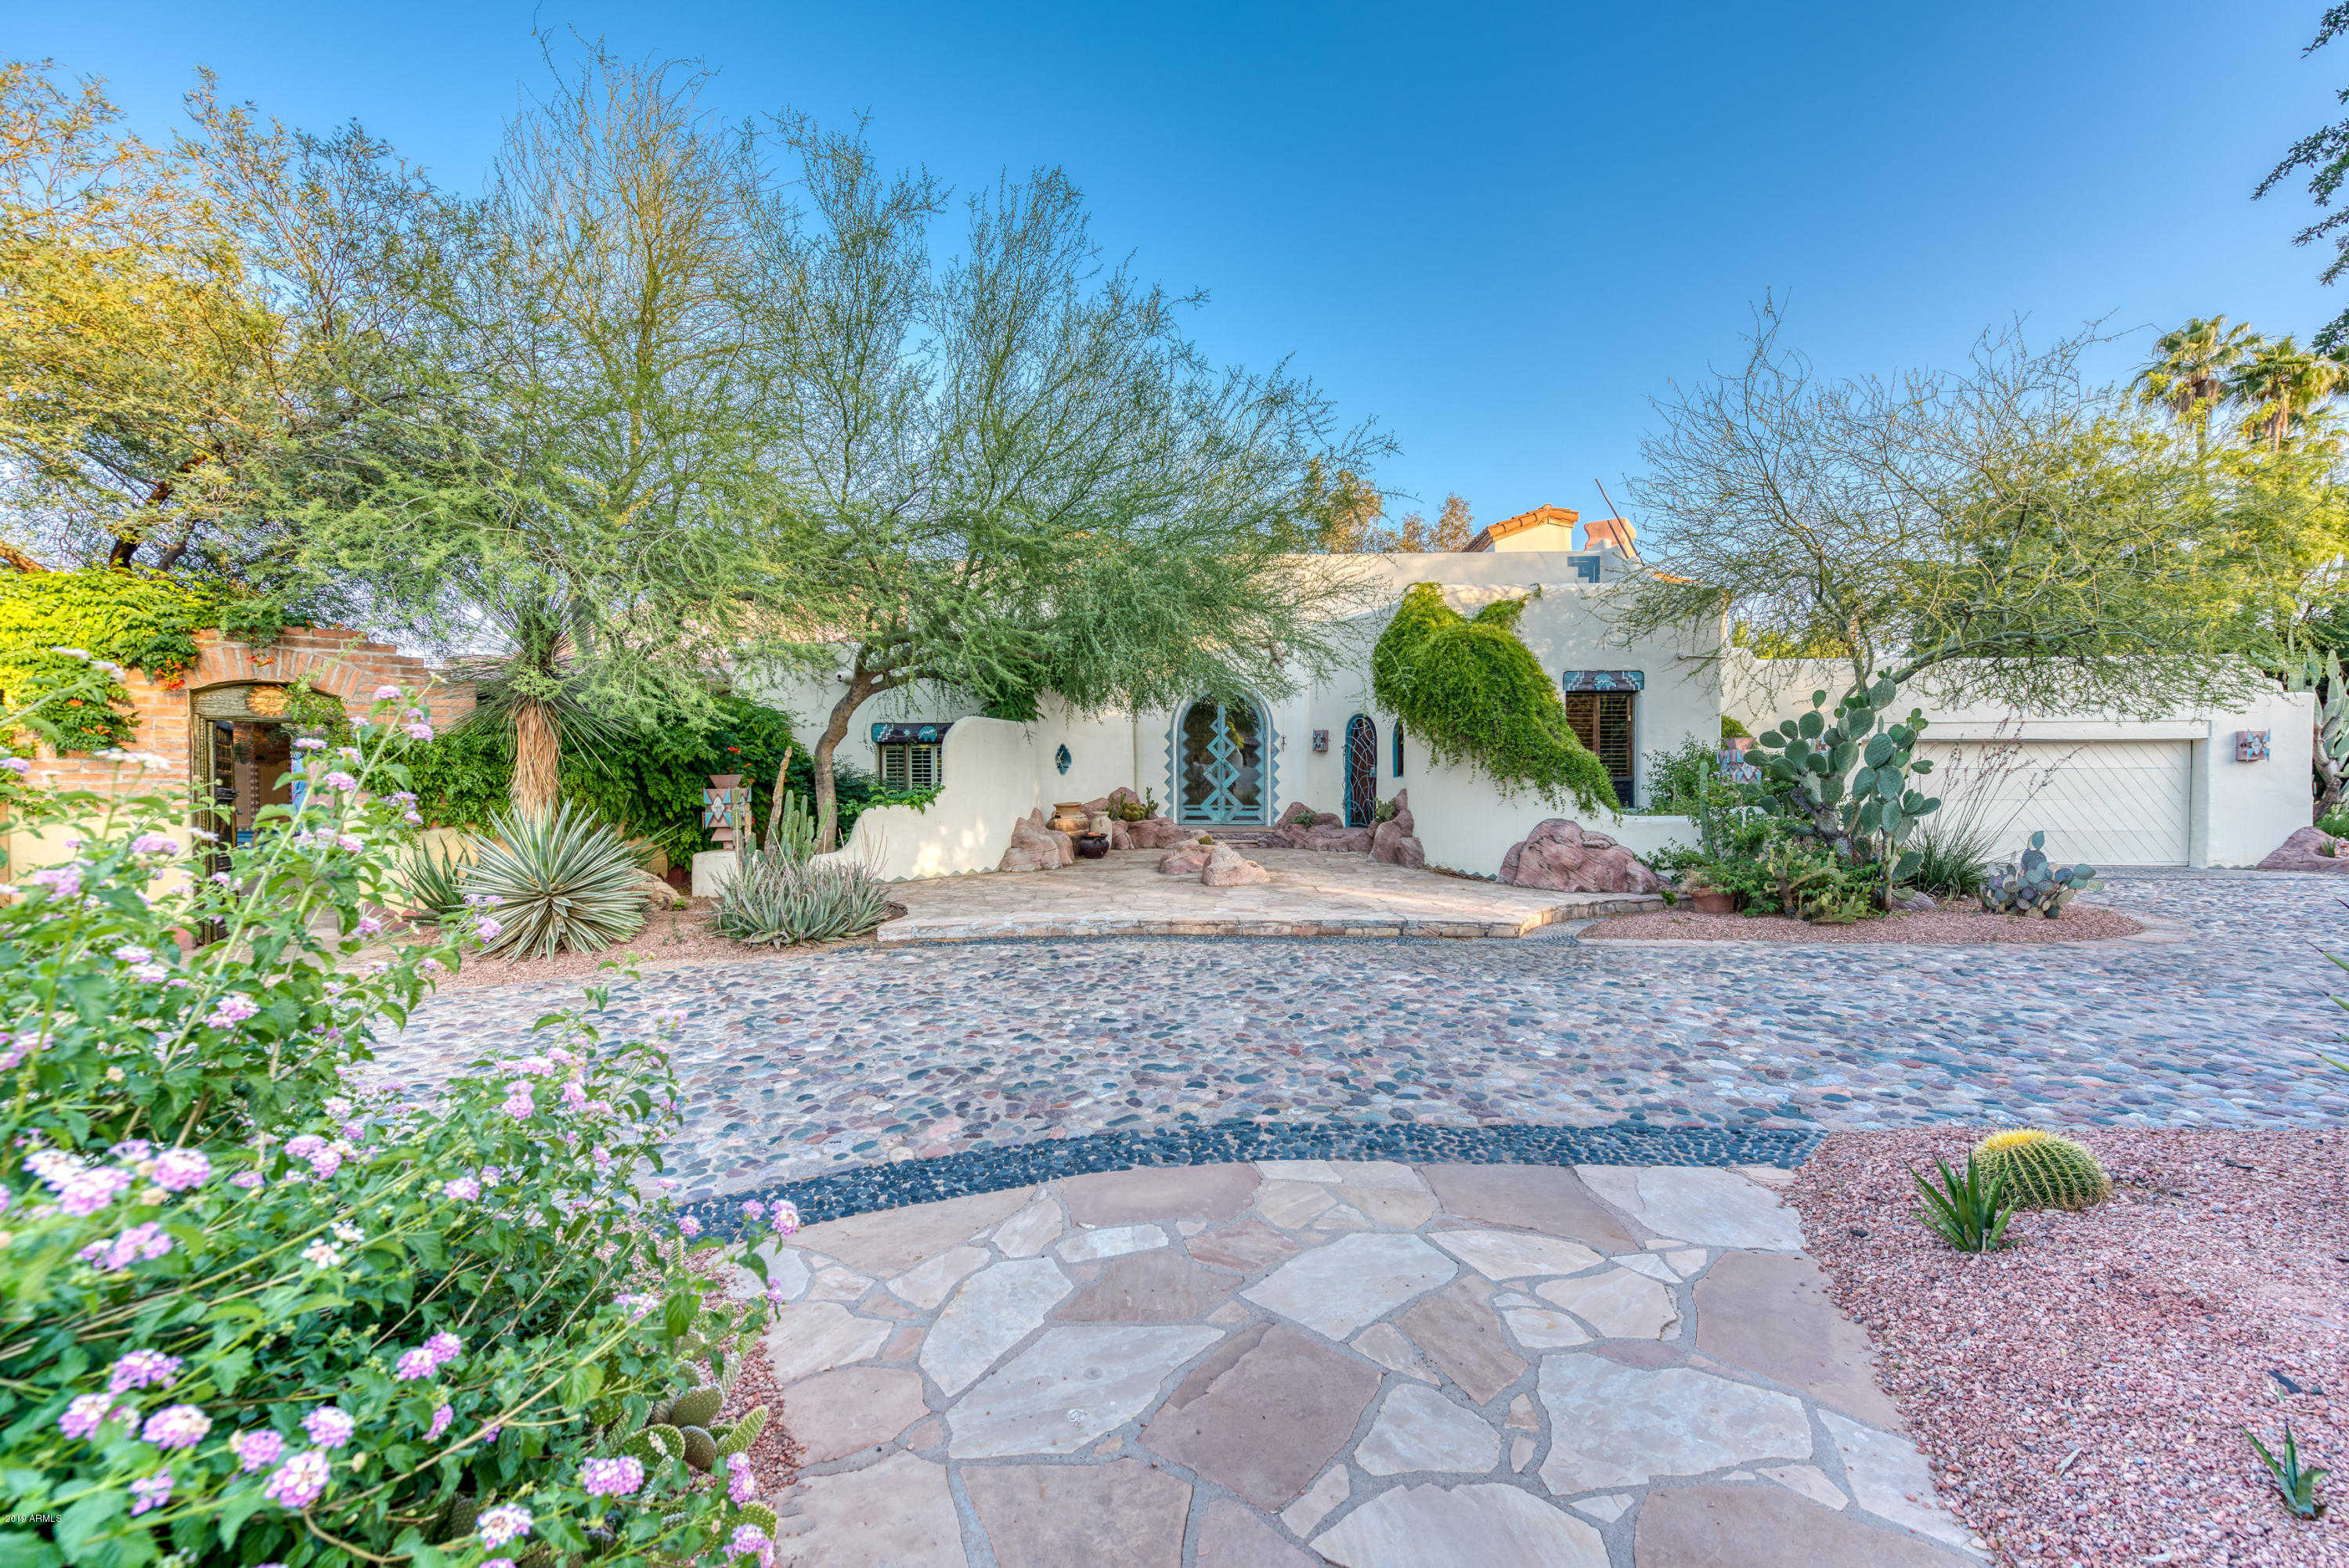 $1,999,999 - 4Br/6Ba - Home for Sale in Camelhead Estates Unit 2 Lot 1-16, Paradise Valley